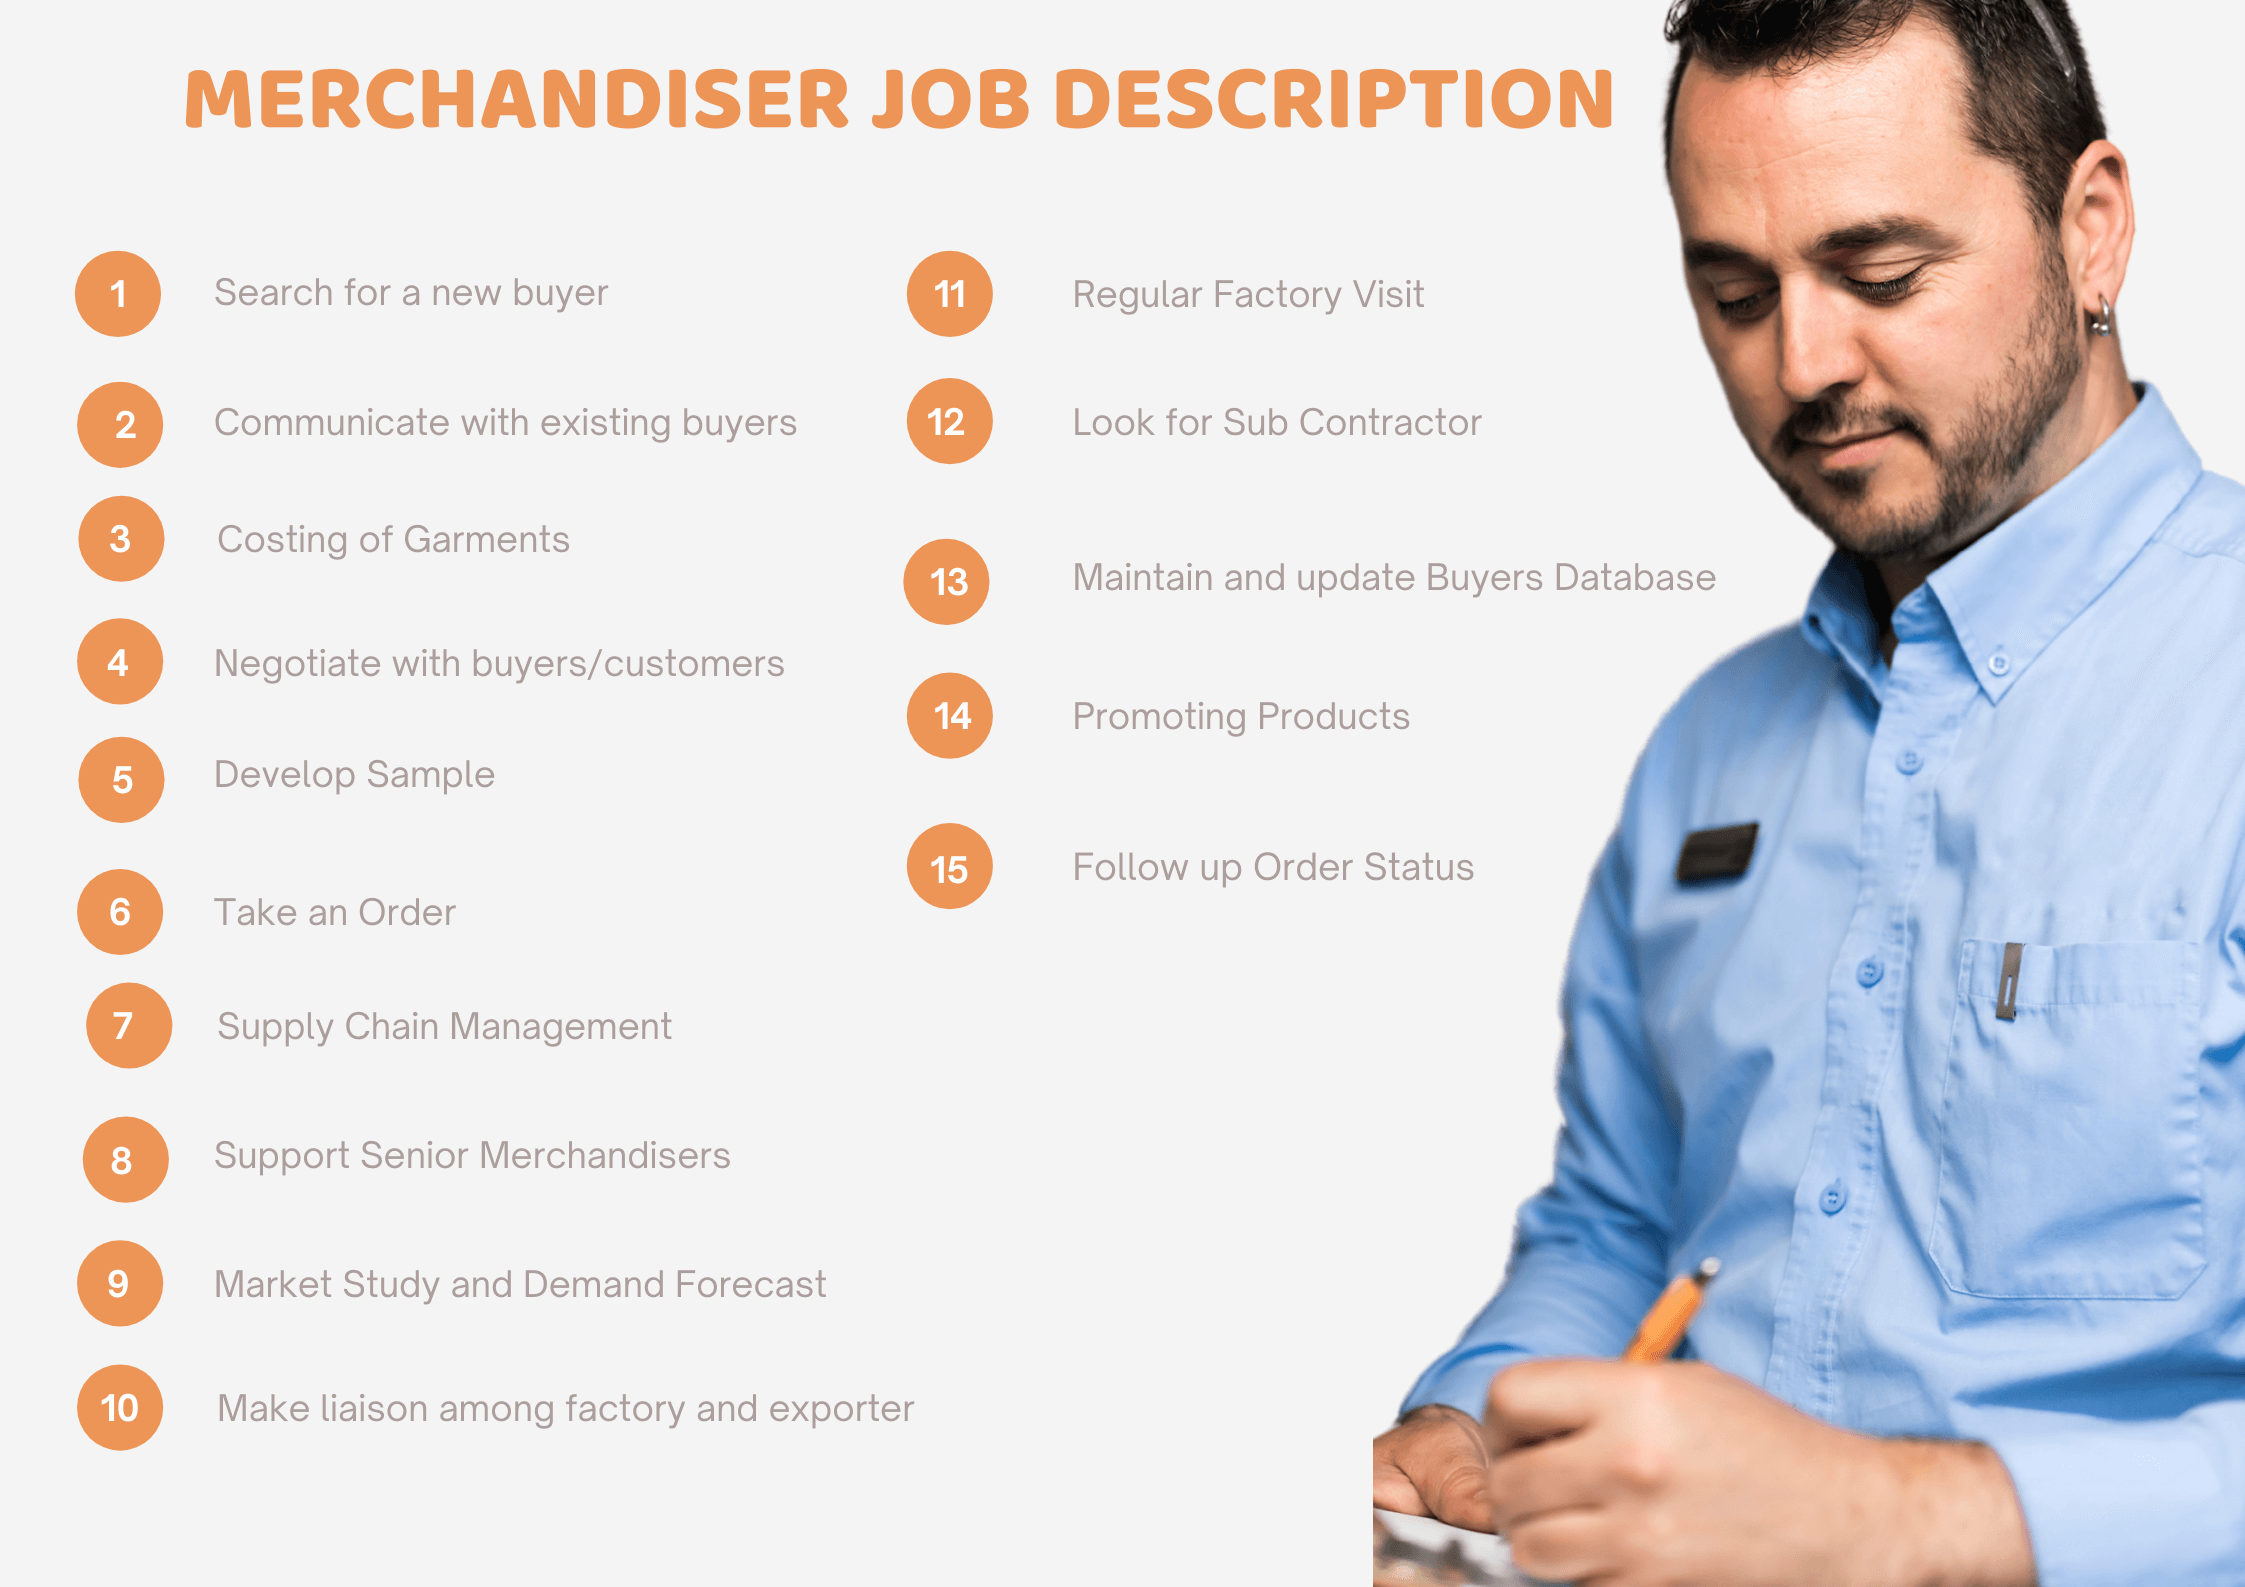 Trainee Merchandiser Job Description